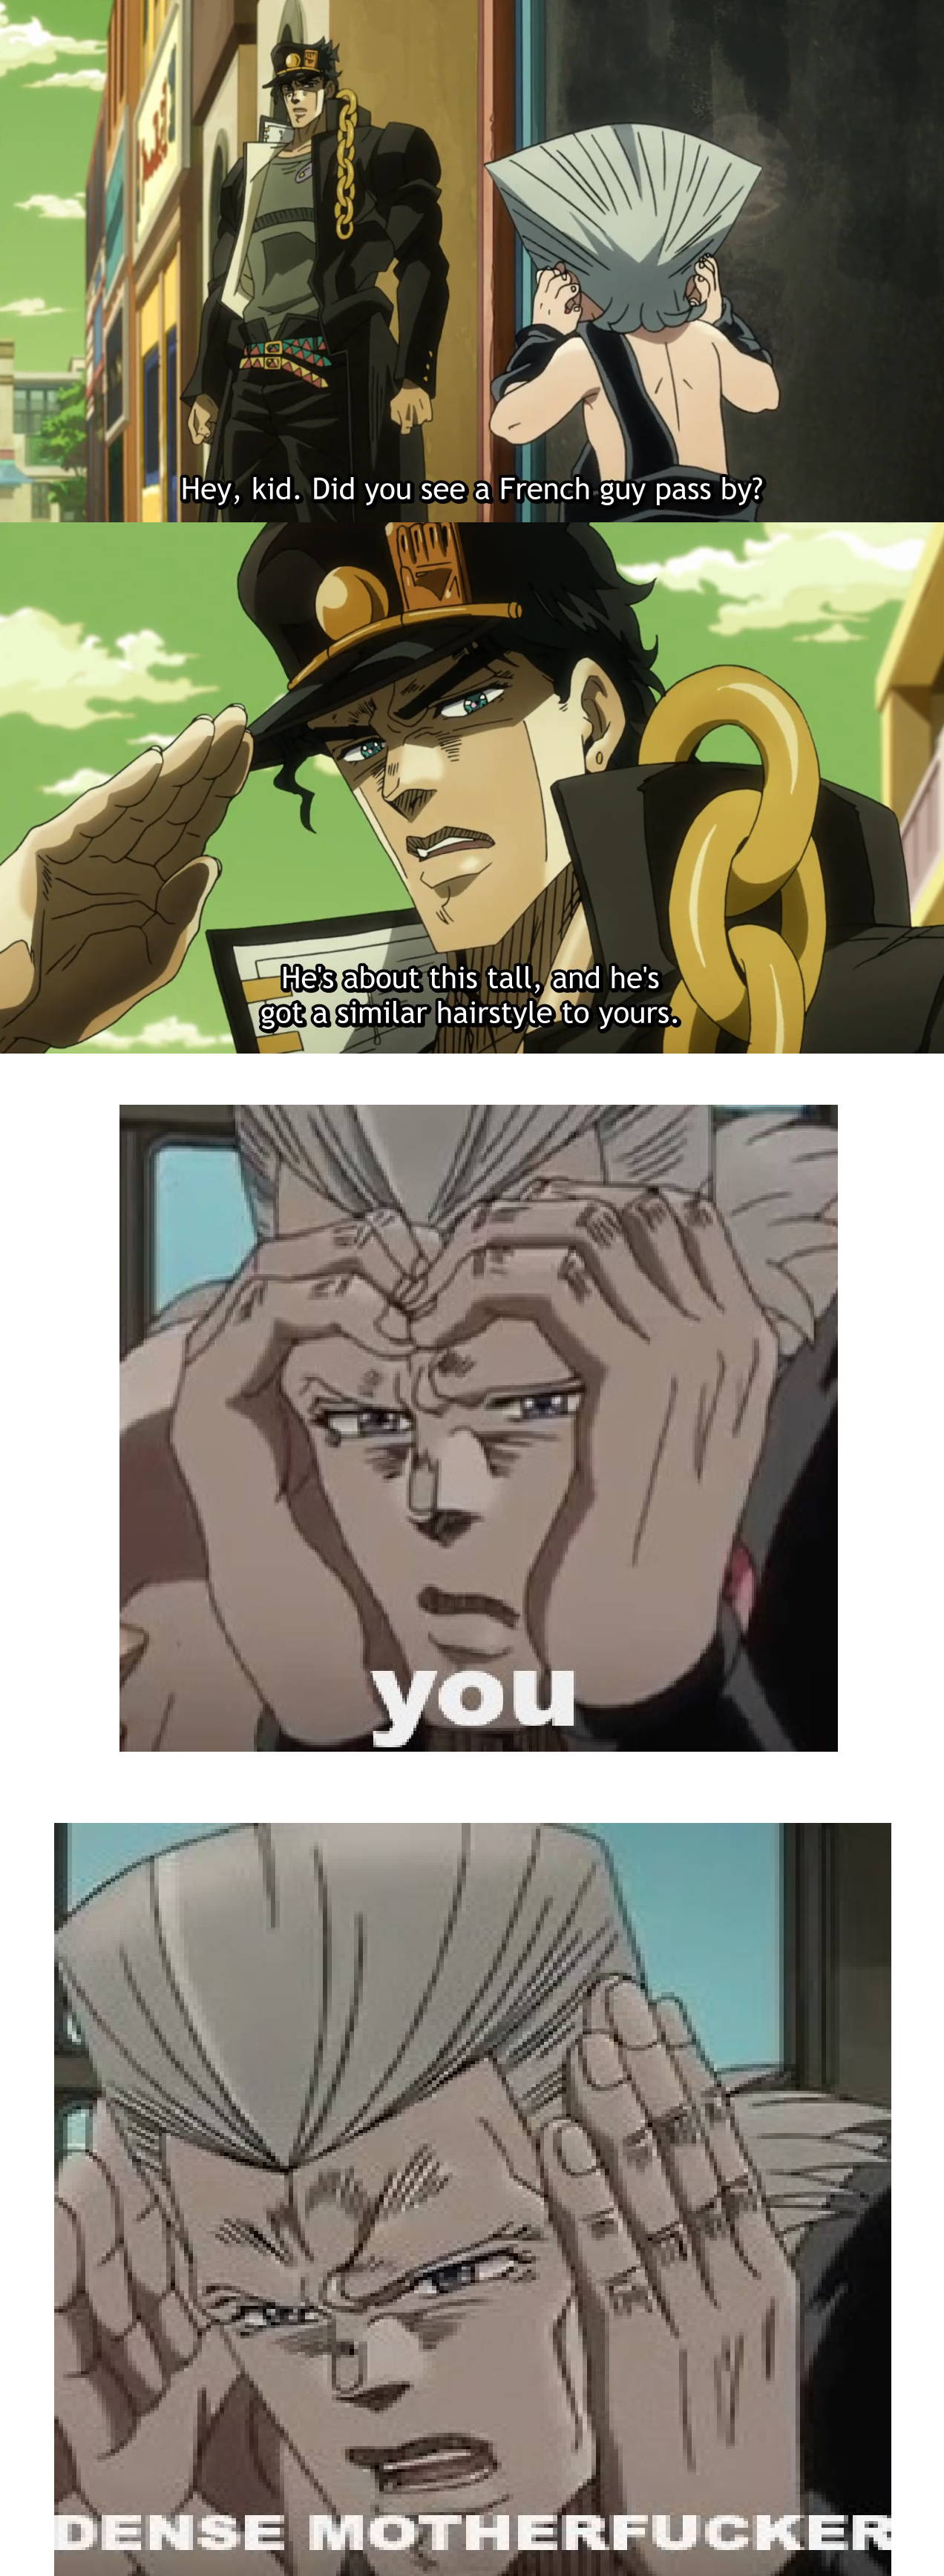 Jotaro, I Know Youre Not Kakyoin But Seriously